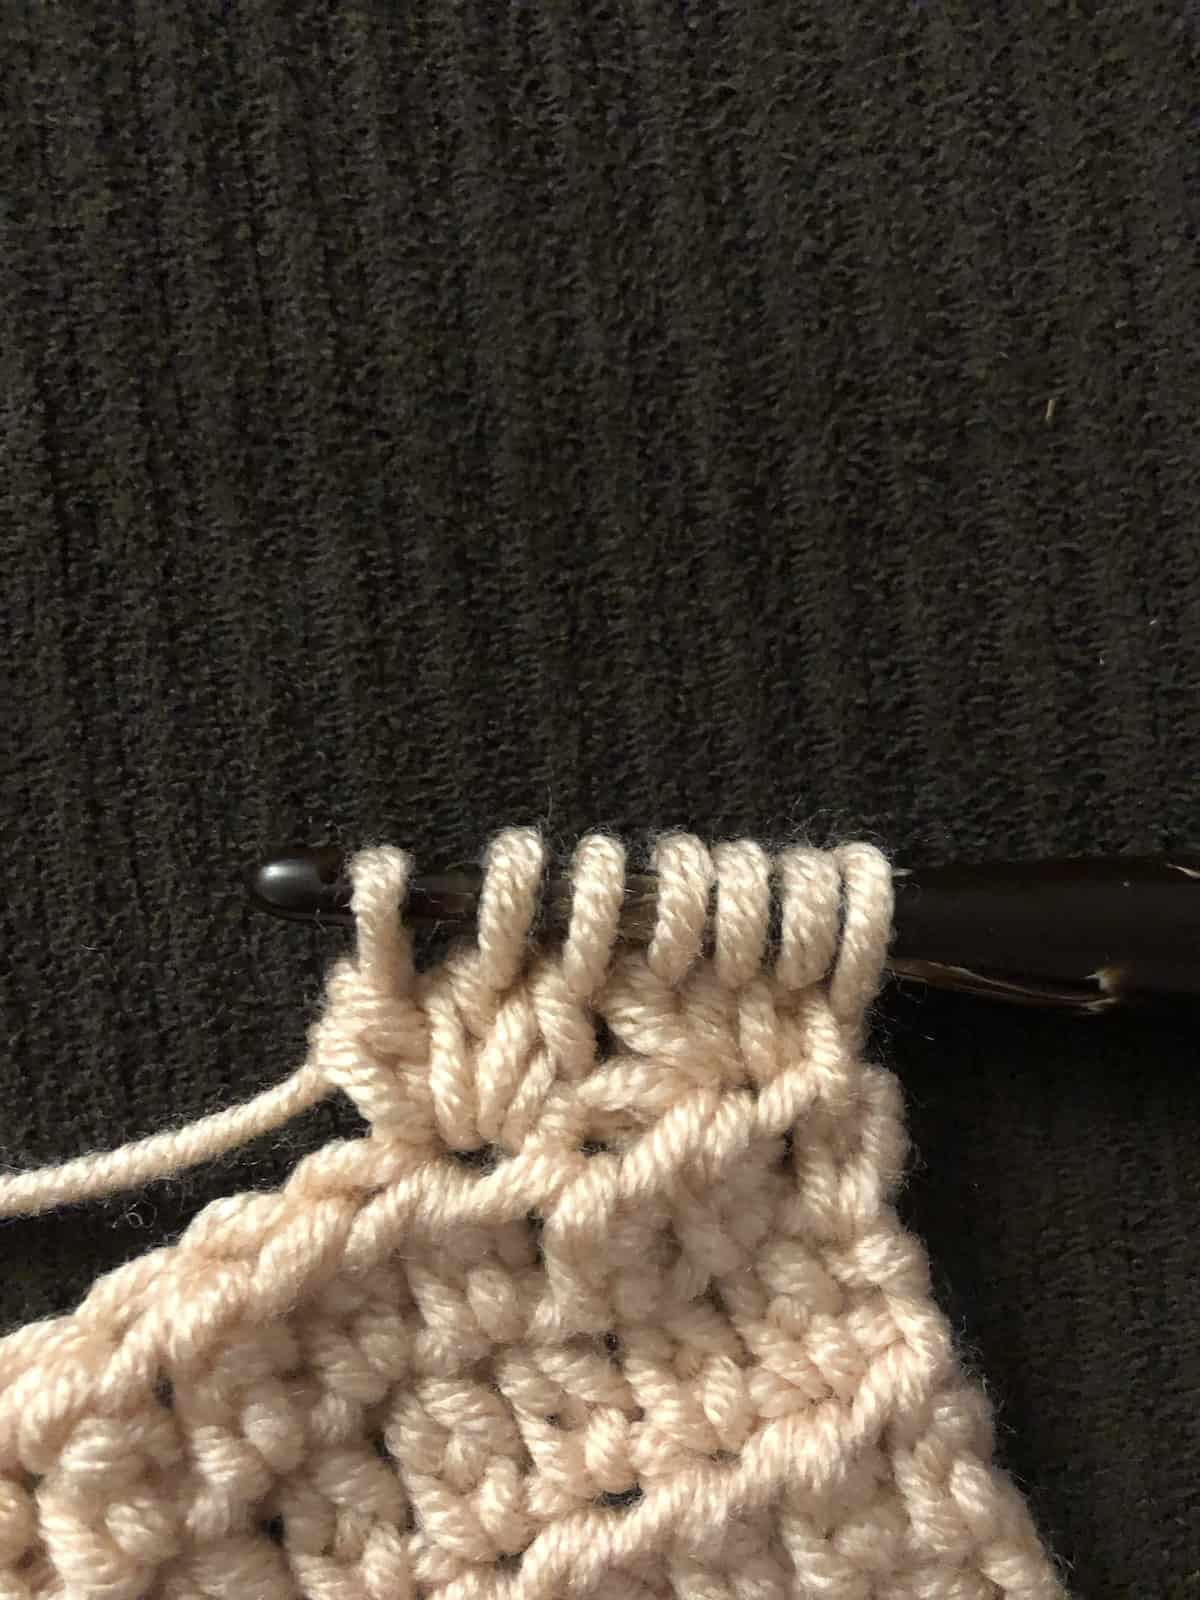 picture of 7 loops on hook for Tc stitch